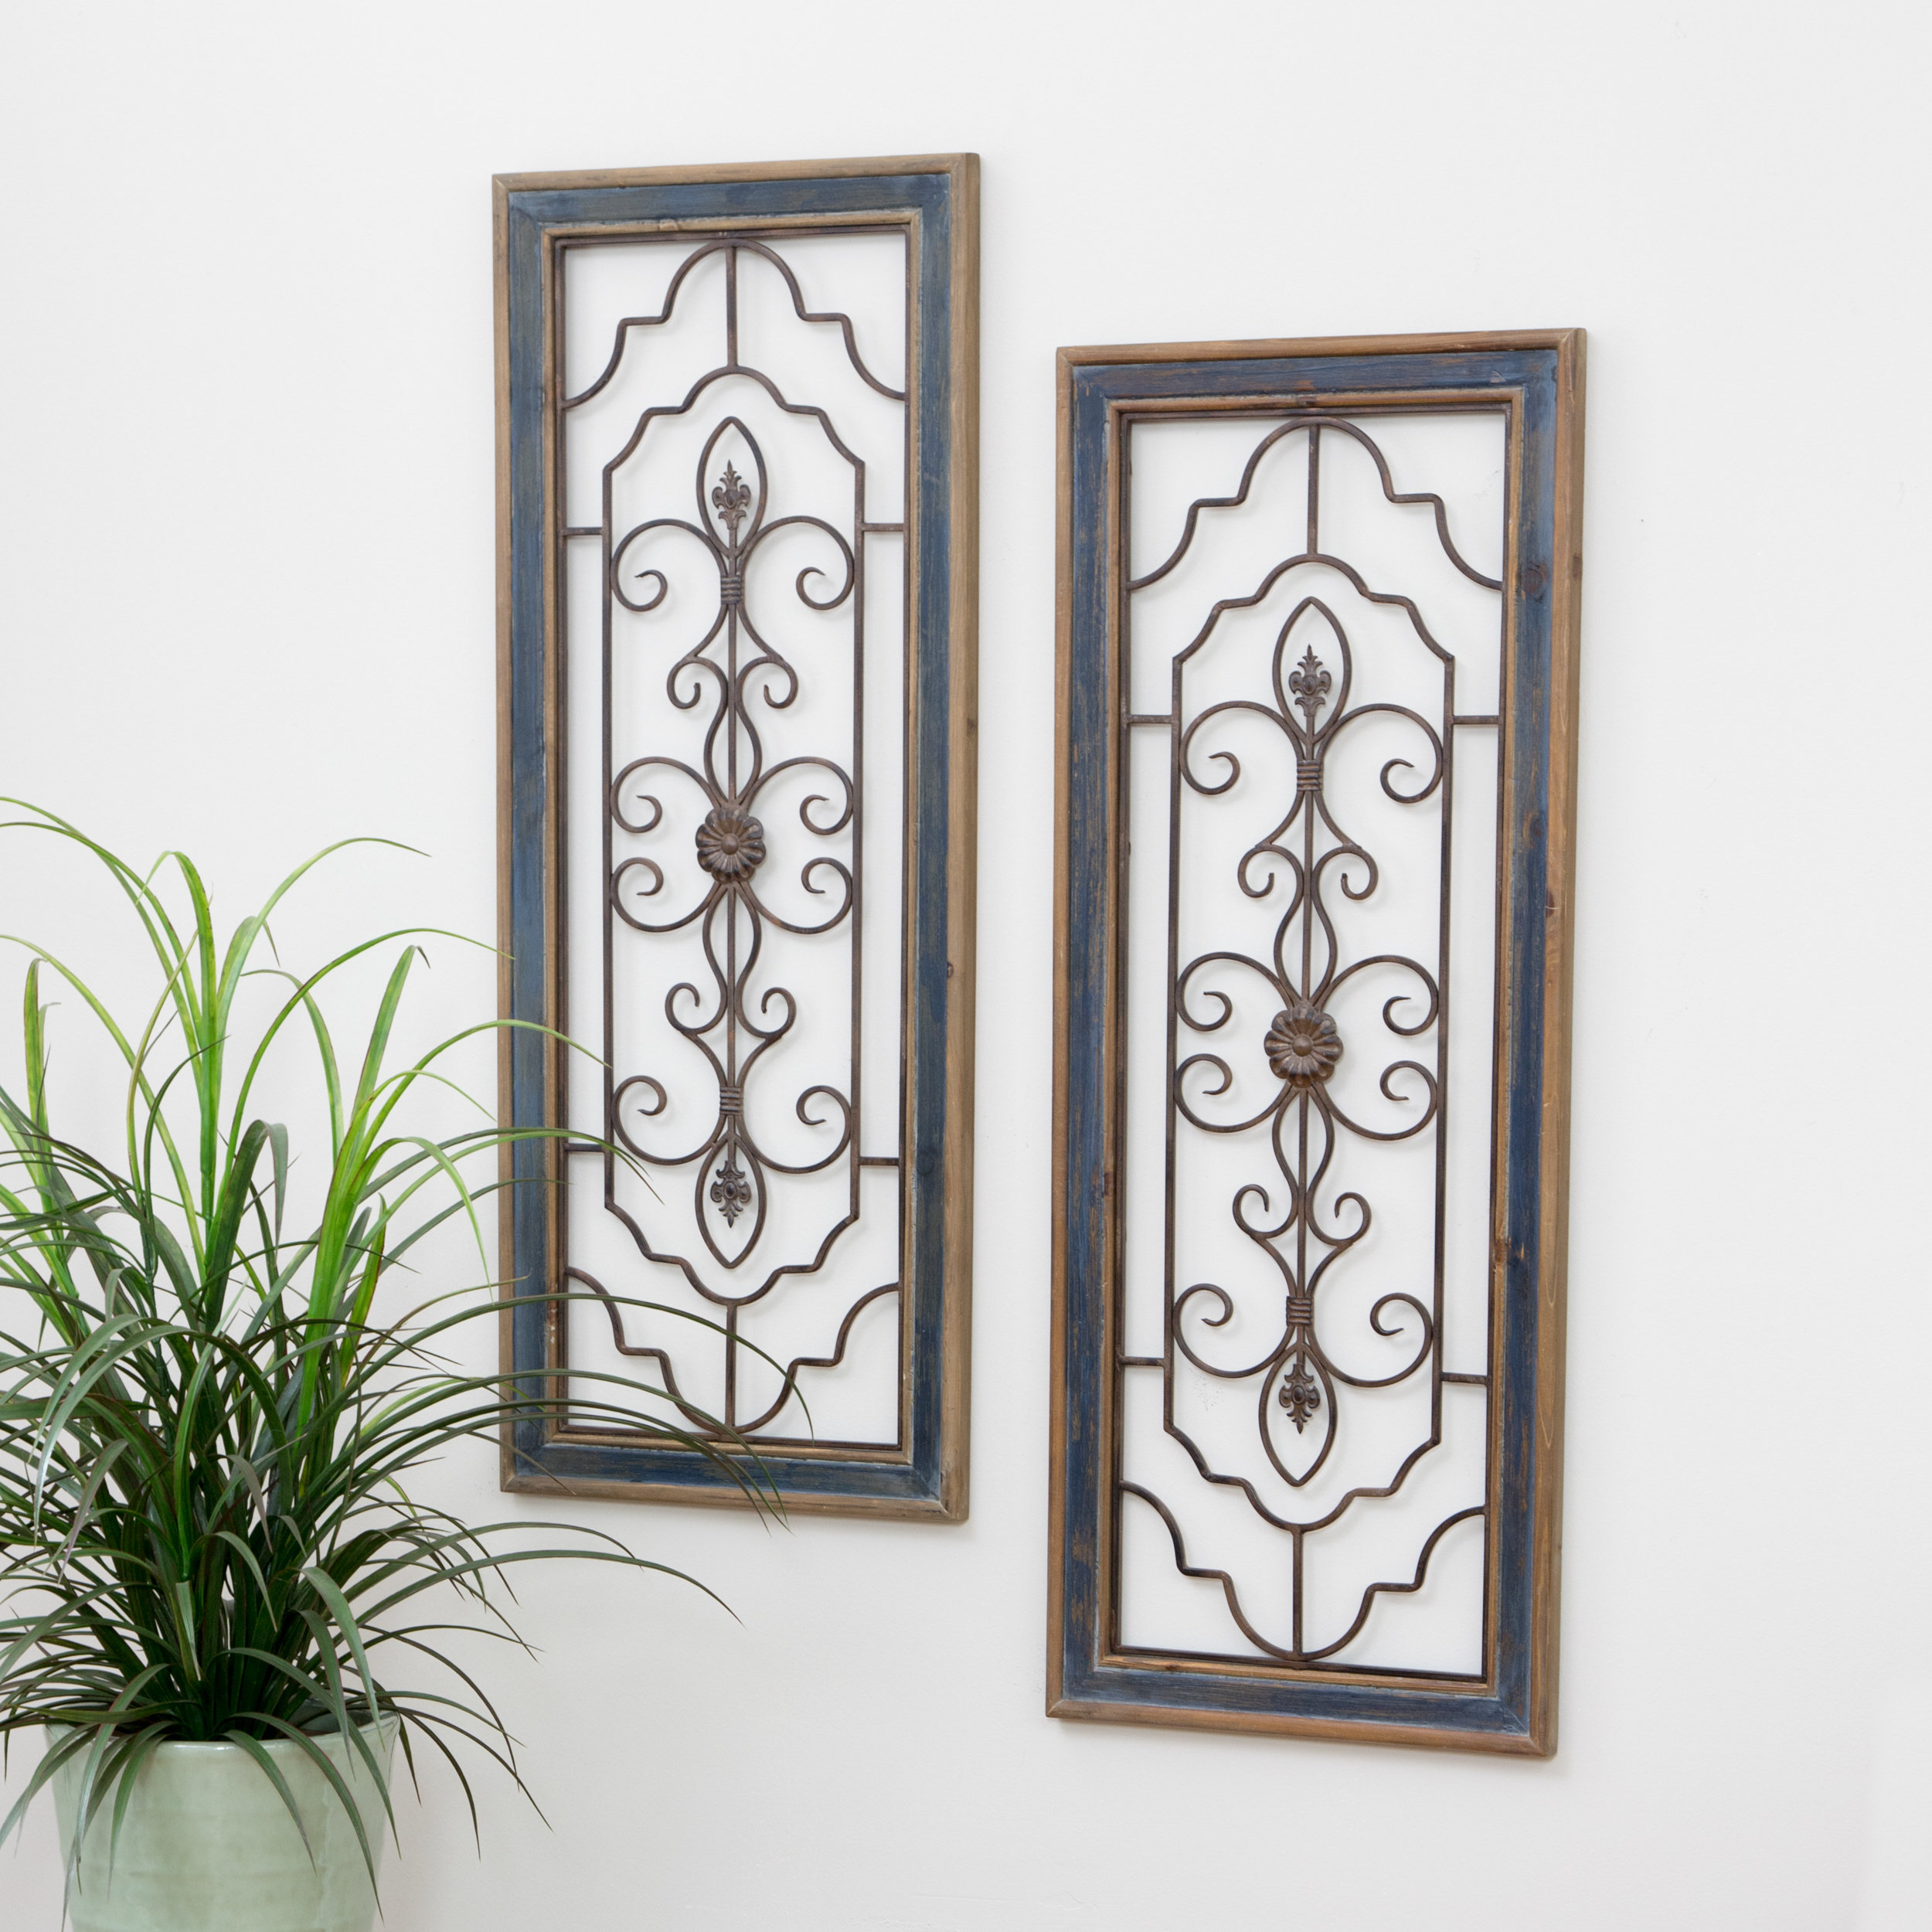 2 Piece Wall Decor Set | Wayfair Inside 4 Piece Metal Wall Plaque Decor Sets (View 10 of 30)